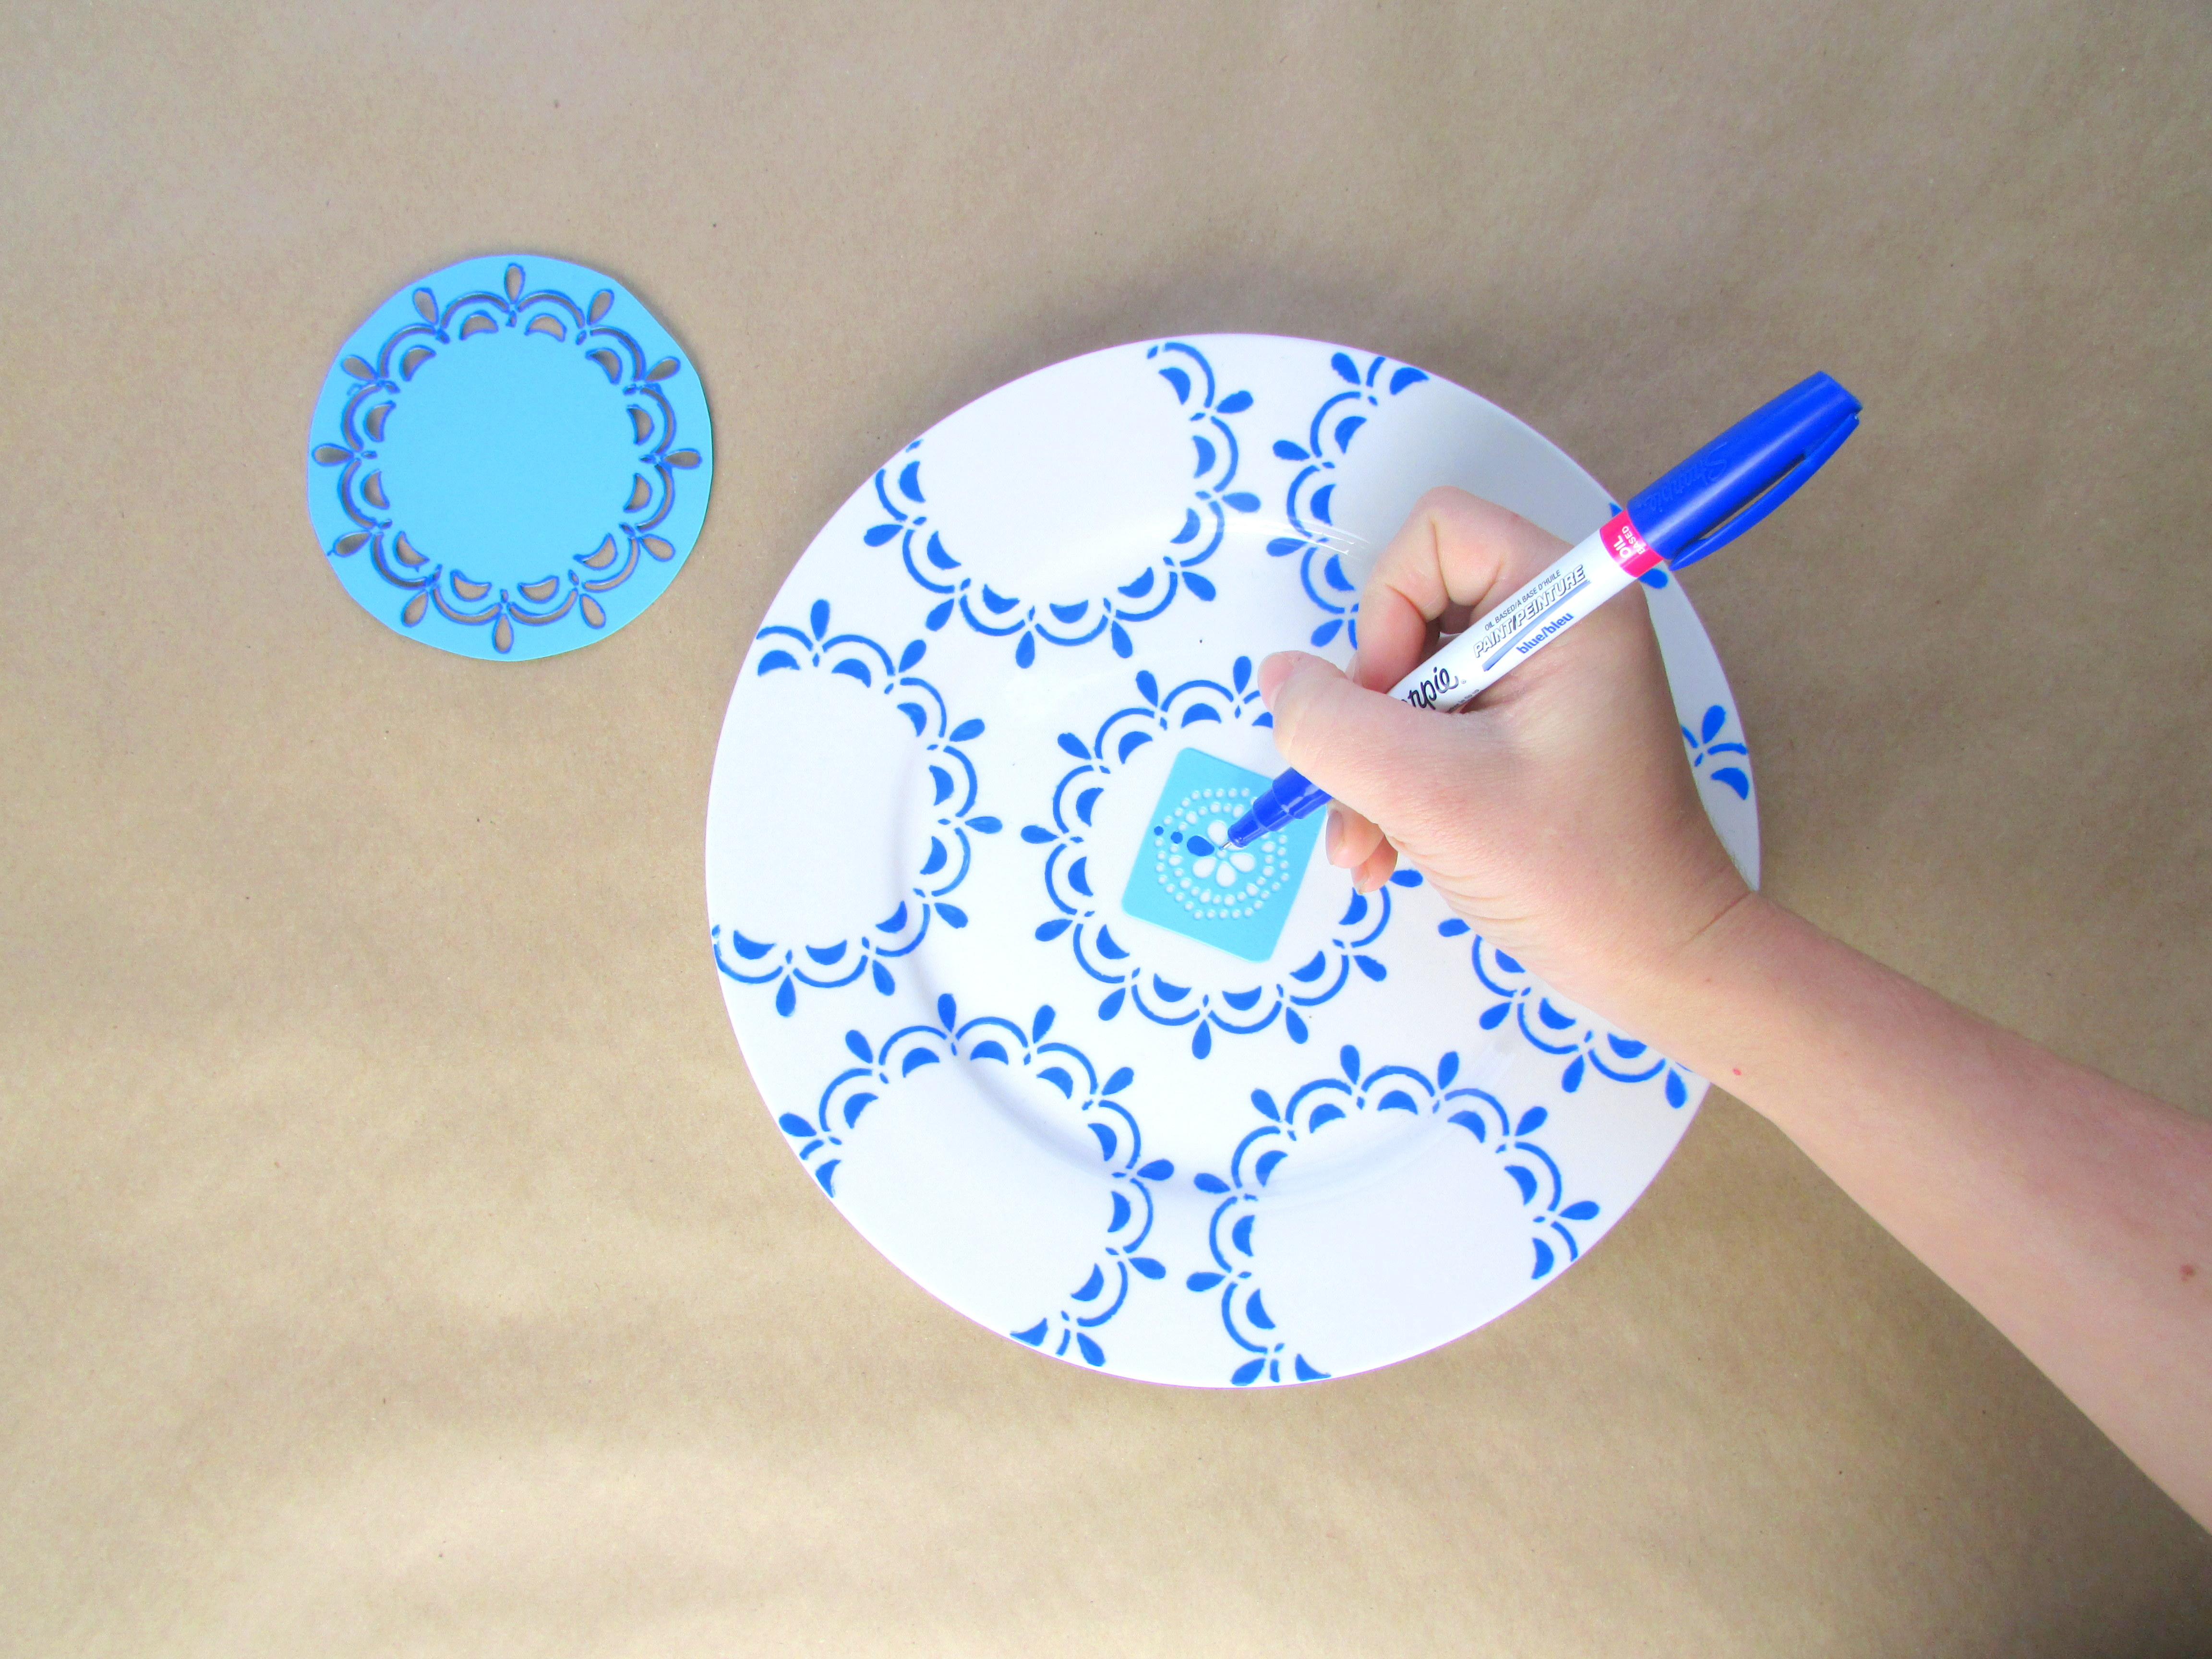 Hand Painted Blue White Plates Housebeautiful Com Feature Francois Et Moi